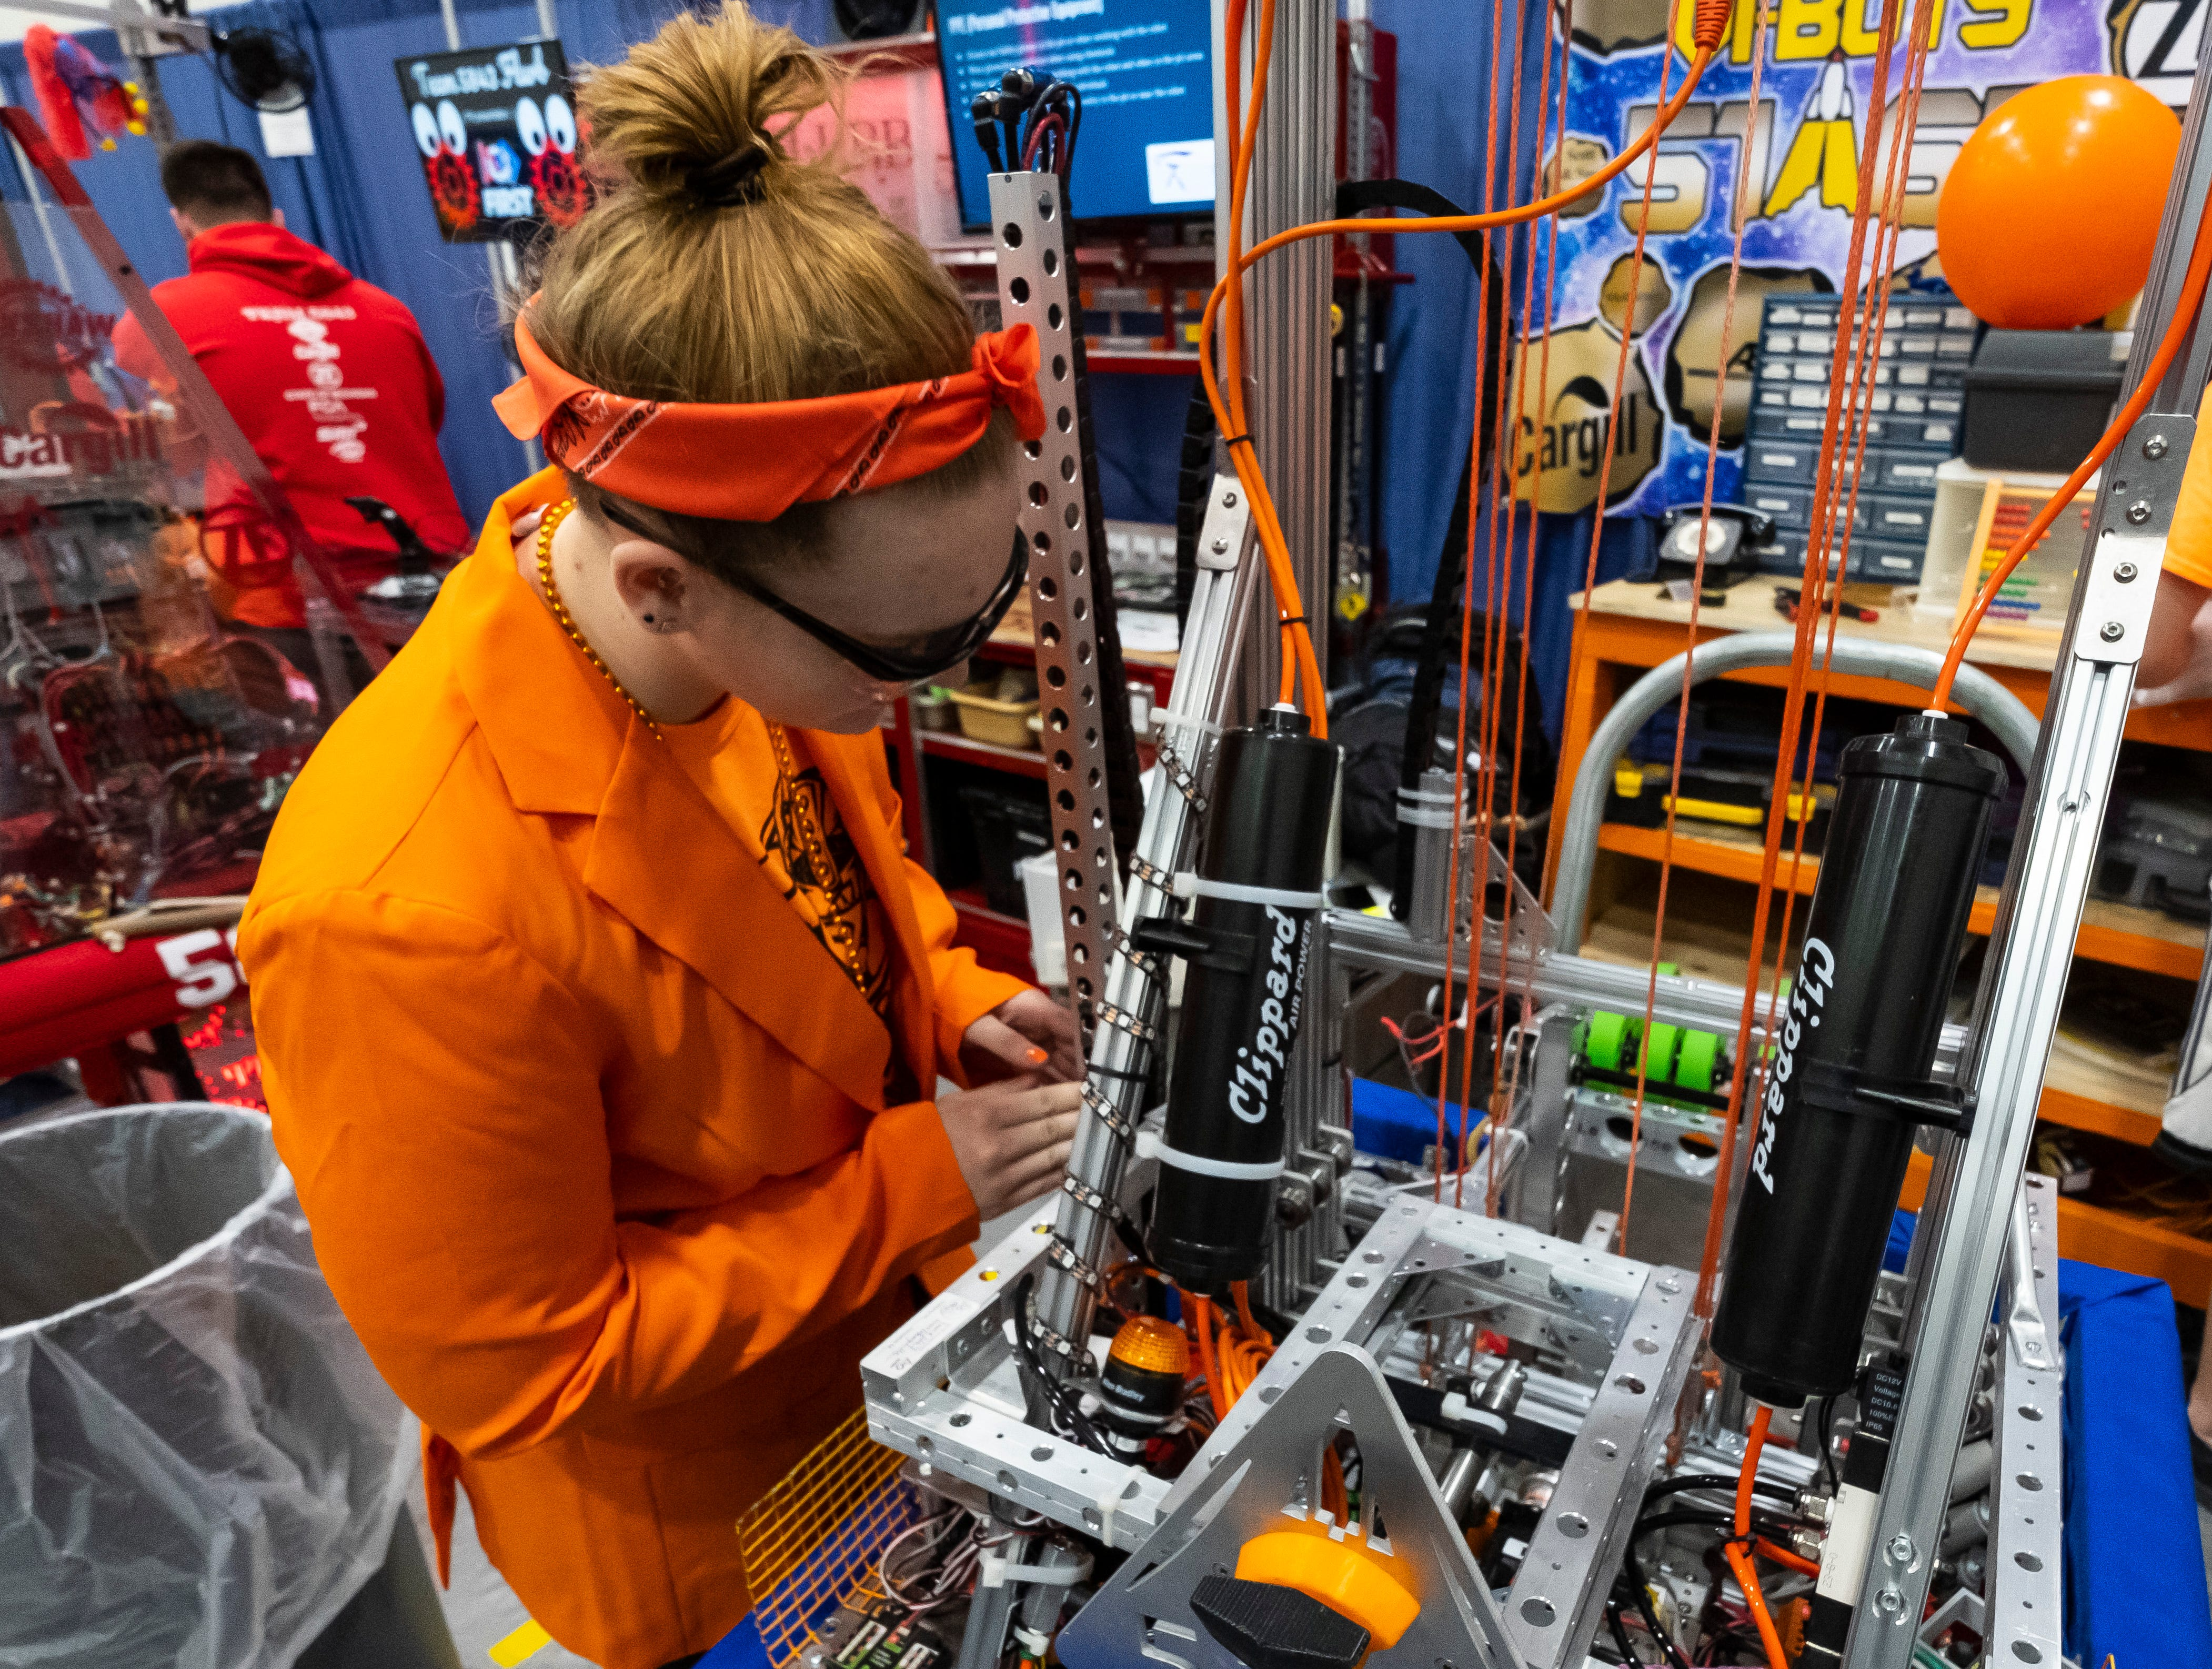 Marysville High School junior Avery Turner, 16, works on making final adjustments to her team's robot Friday, March 29, 2019 before competing in the FIRST Robotics district event at Marysville High School.